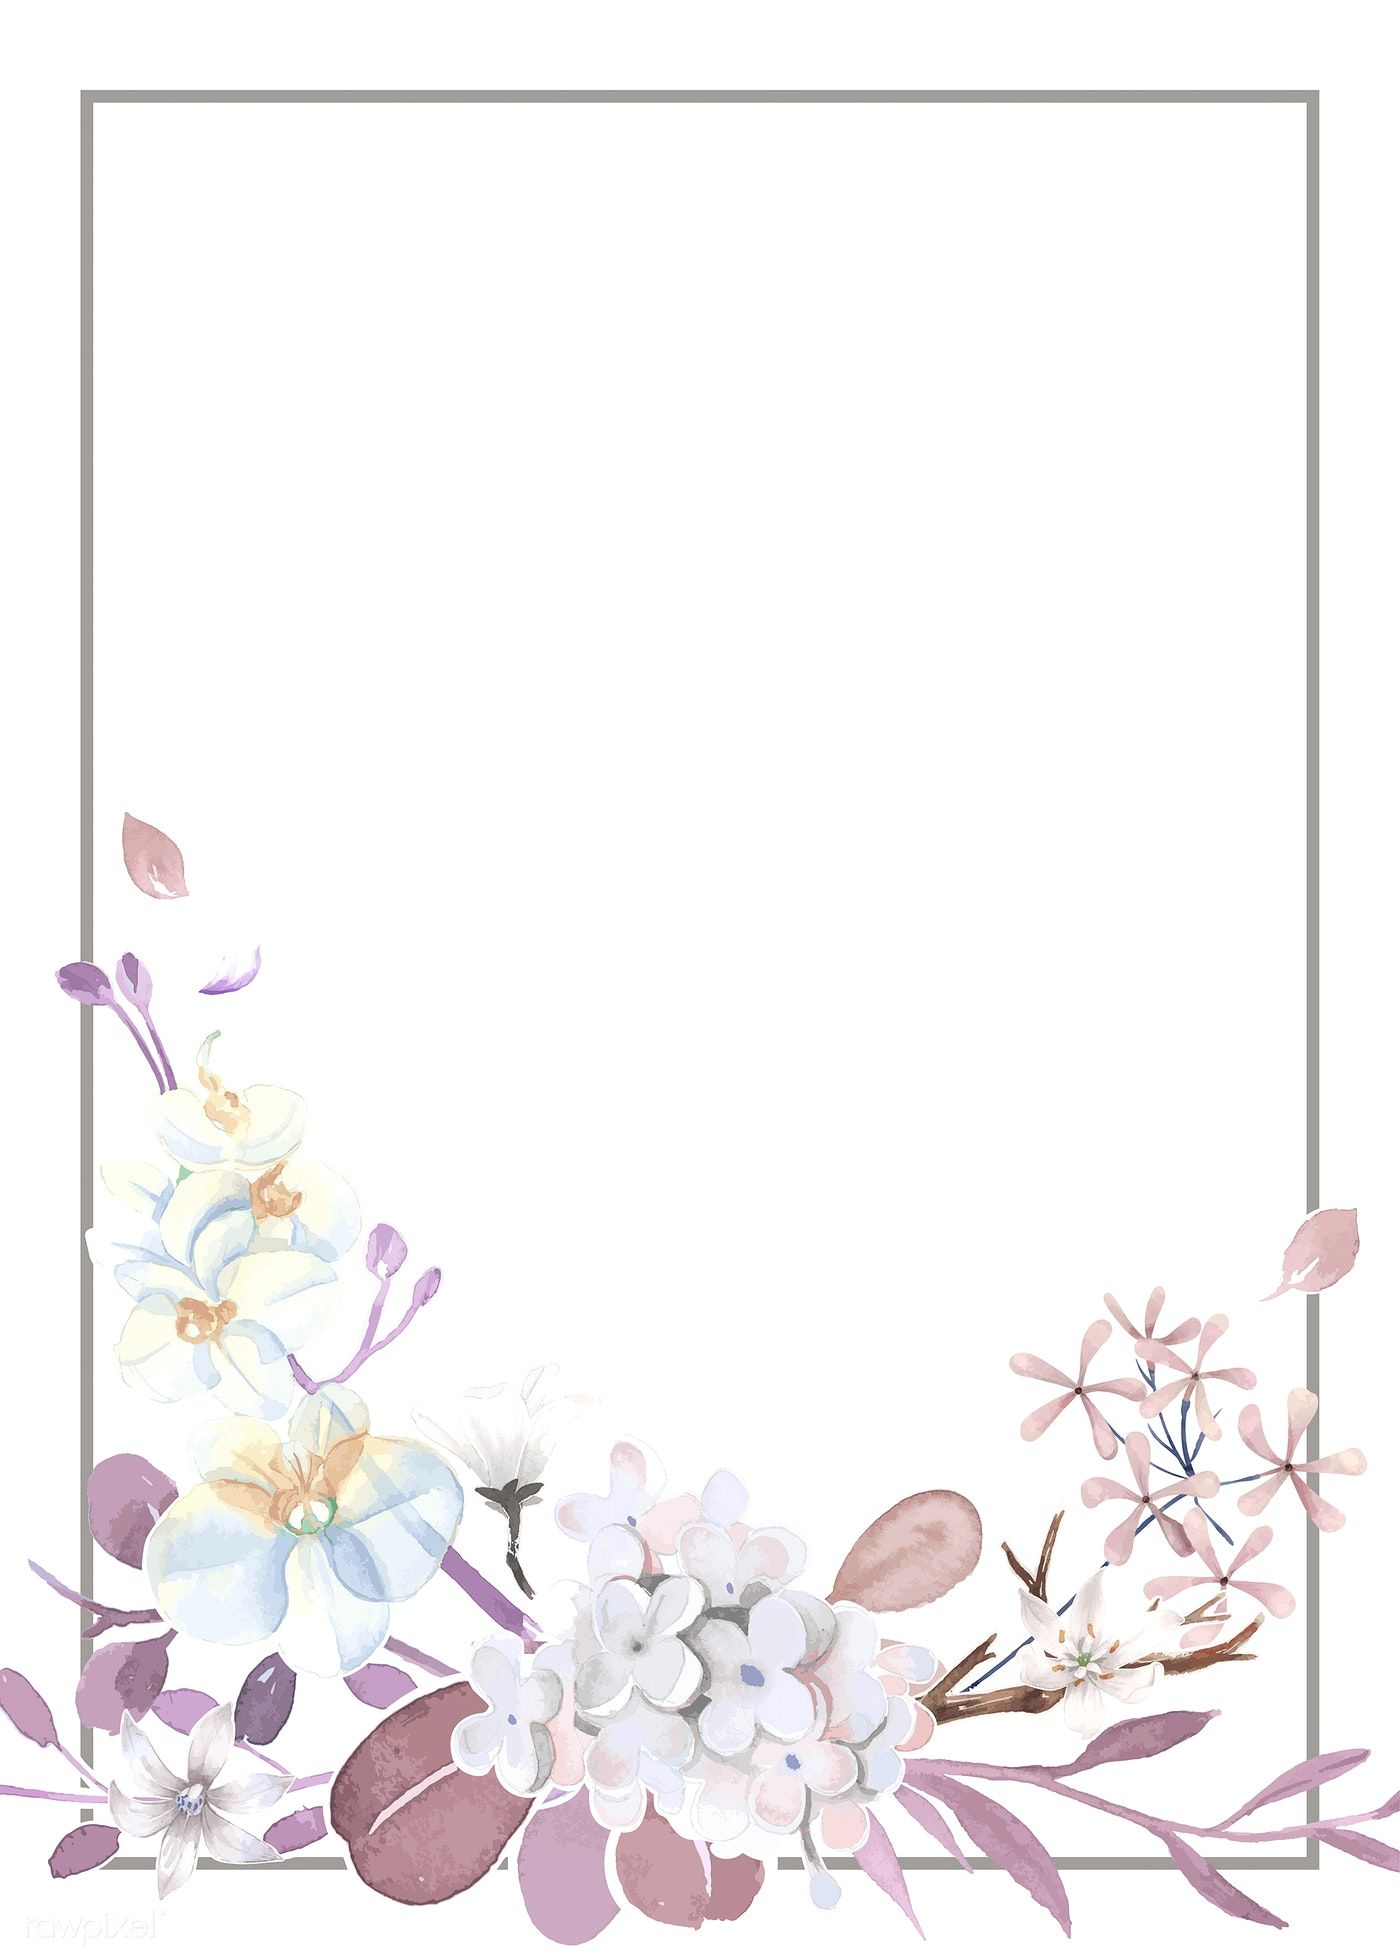 Download premium vector of Purple and pink greeting card